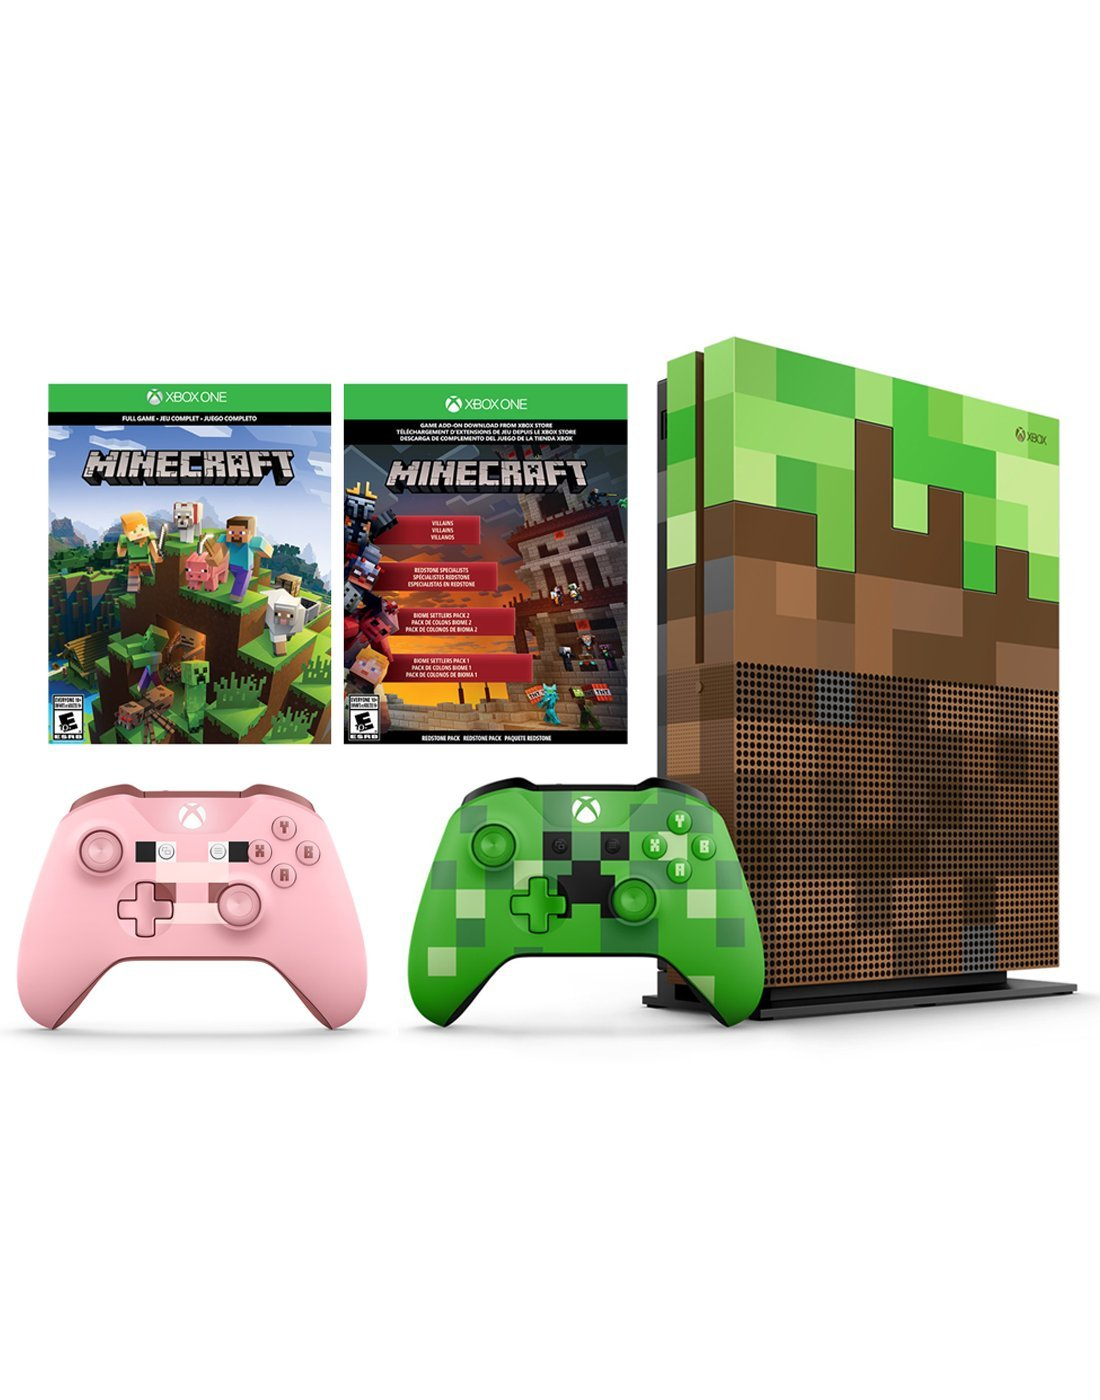 Xbox One S Minecraft Limited Editon 1tb Console And Switch Overcooked 2 English Pal Games Extra Edition Pig Wireless Controller Bundle Electronics